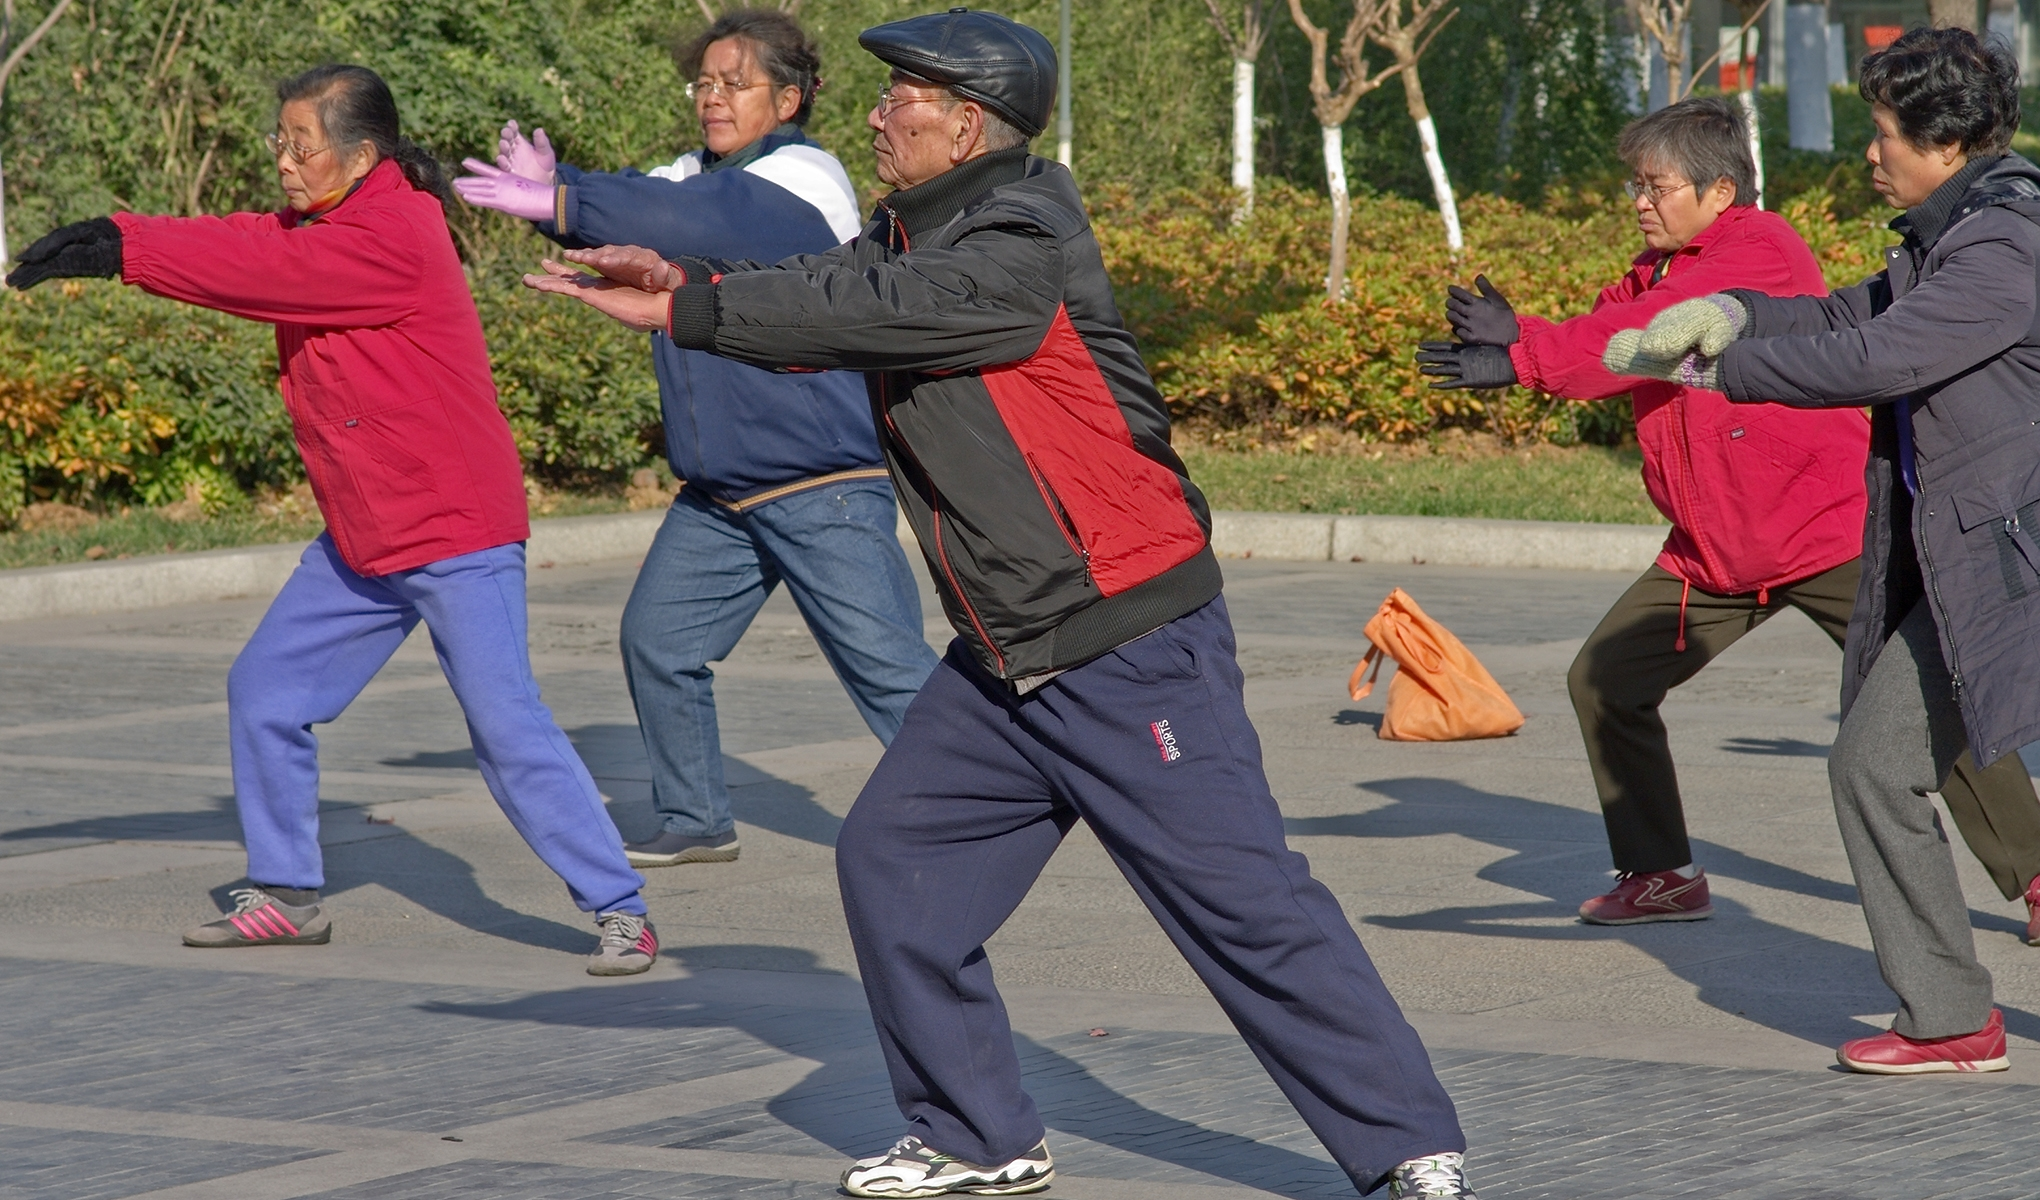 Chinese adults exercising outdoors